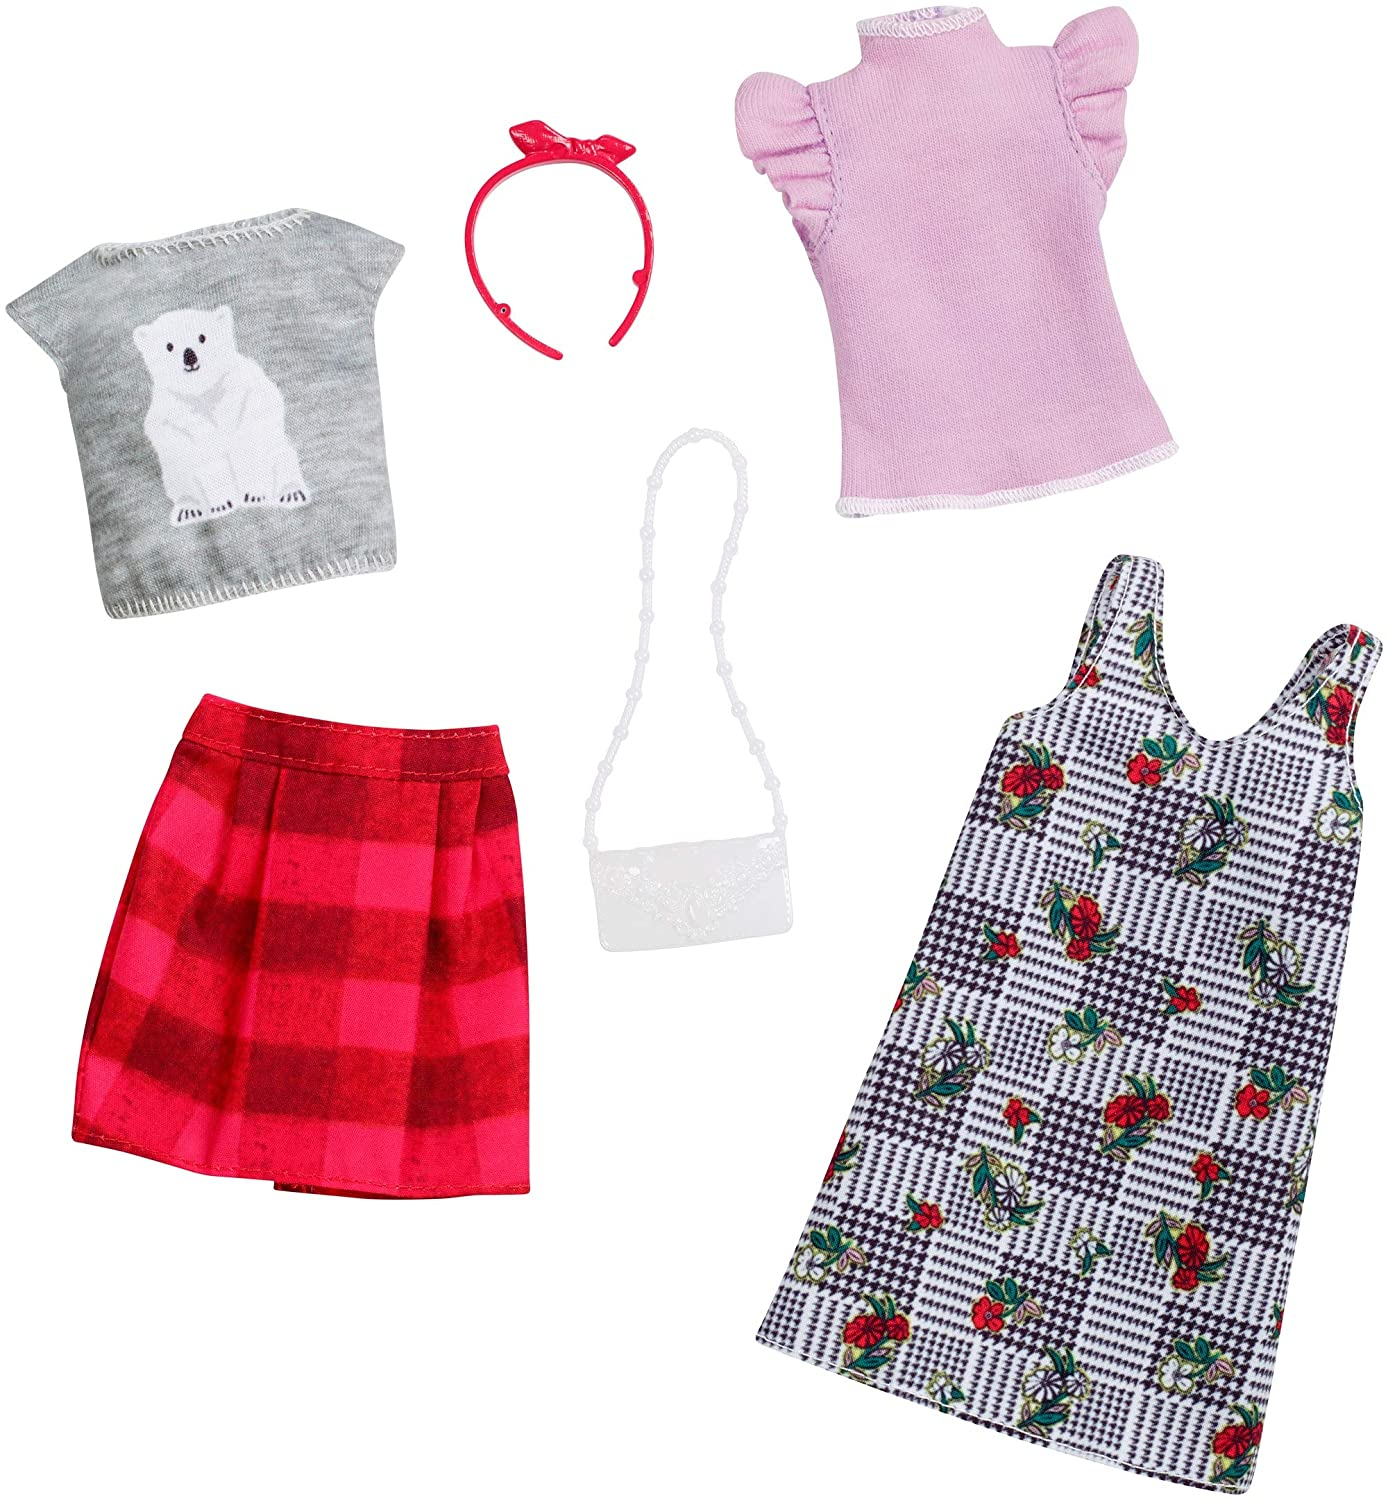 Barbie Fashion, Mix Checks and Nature,2 count